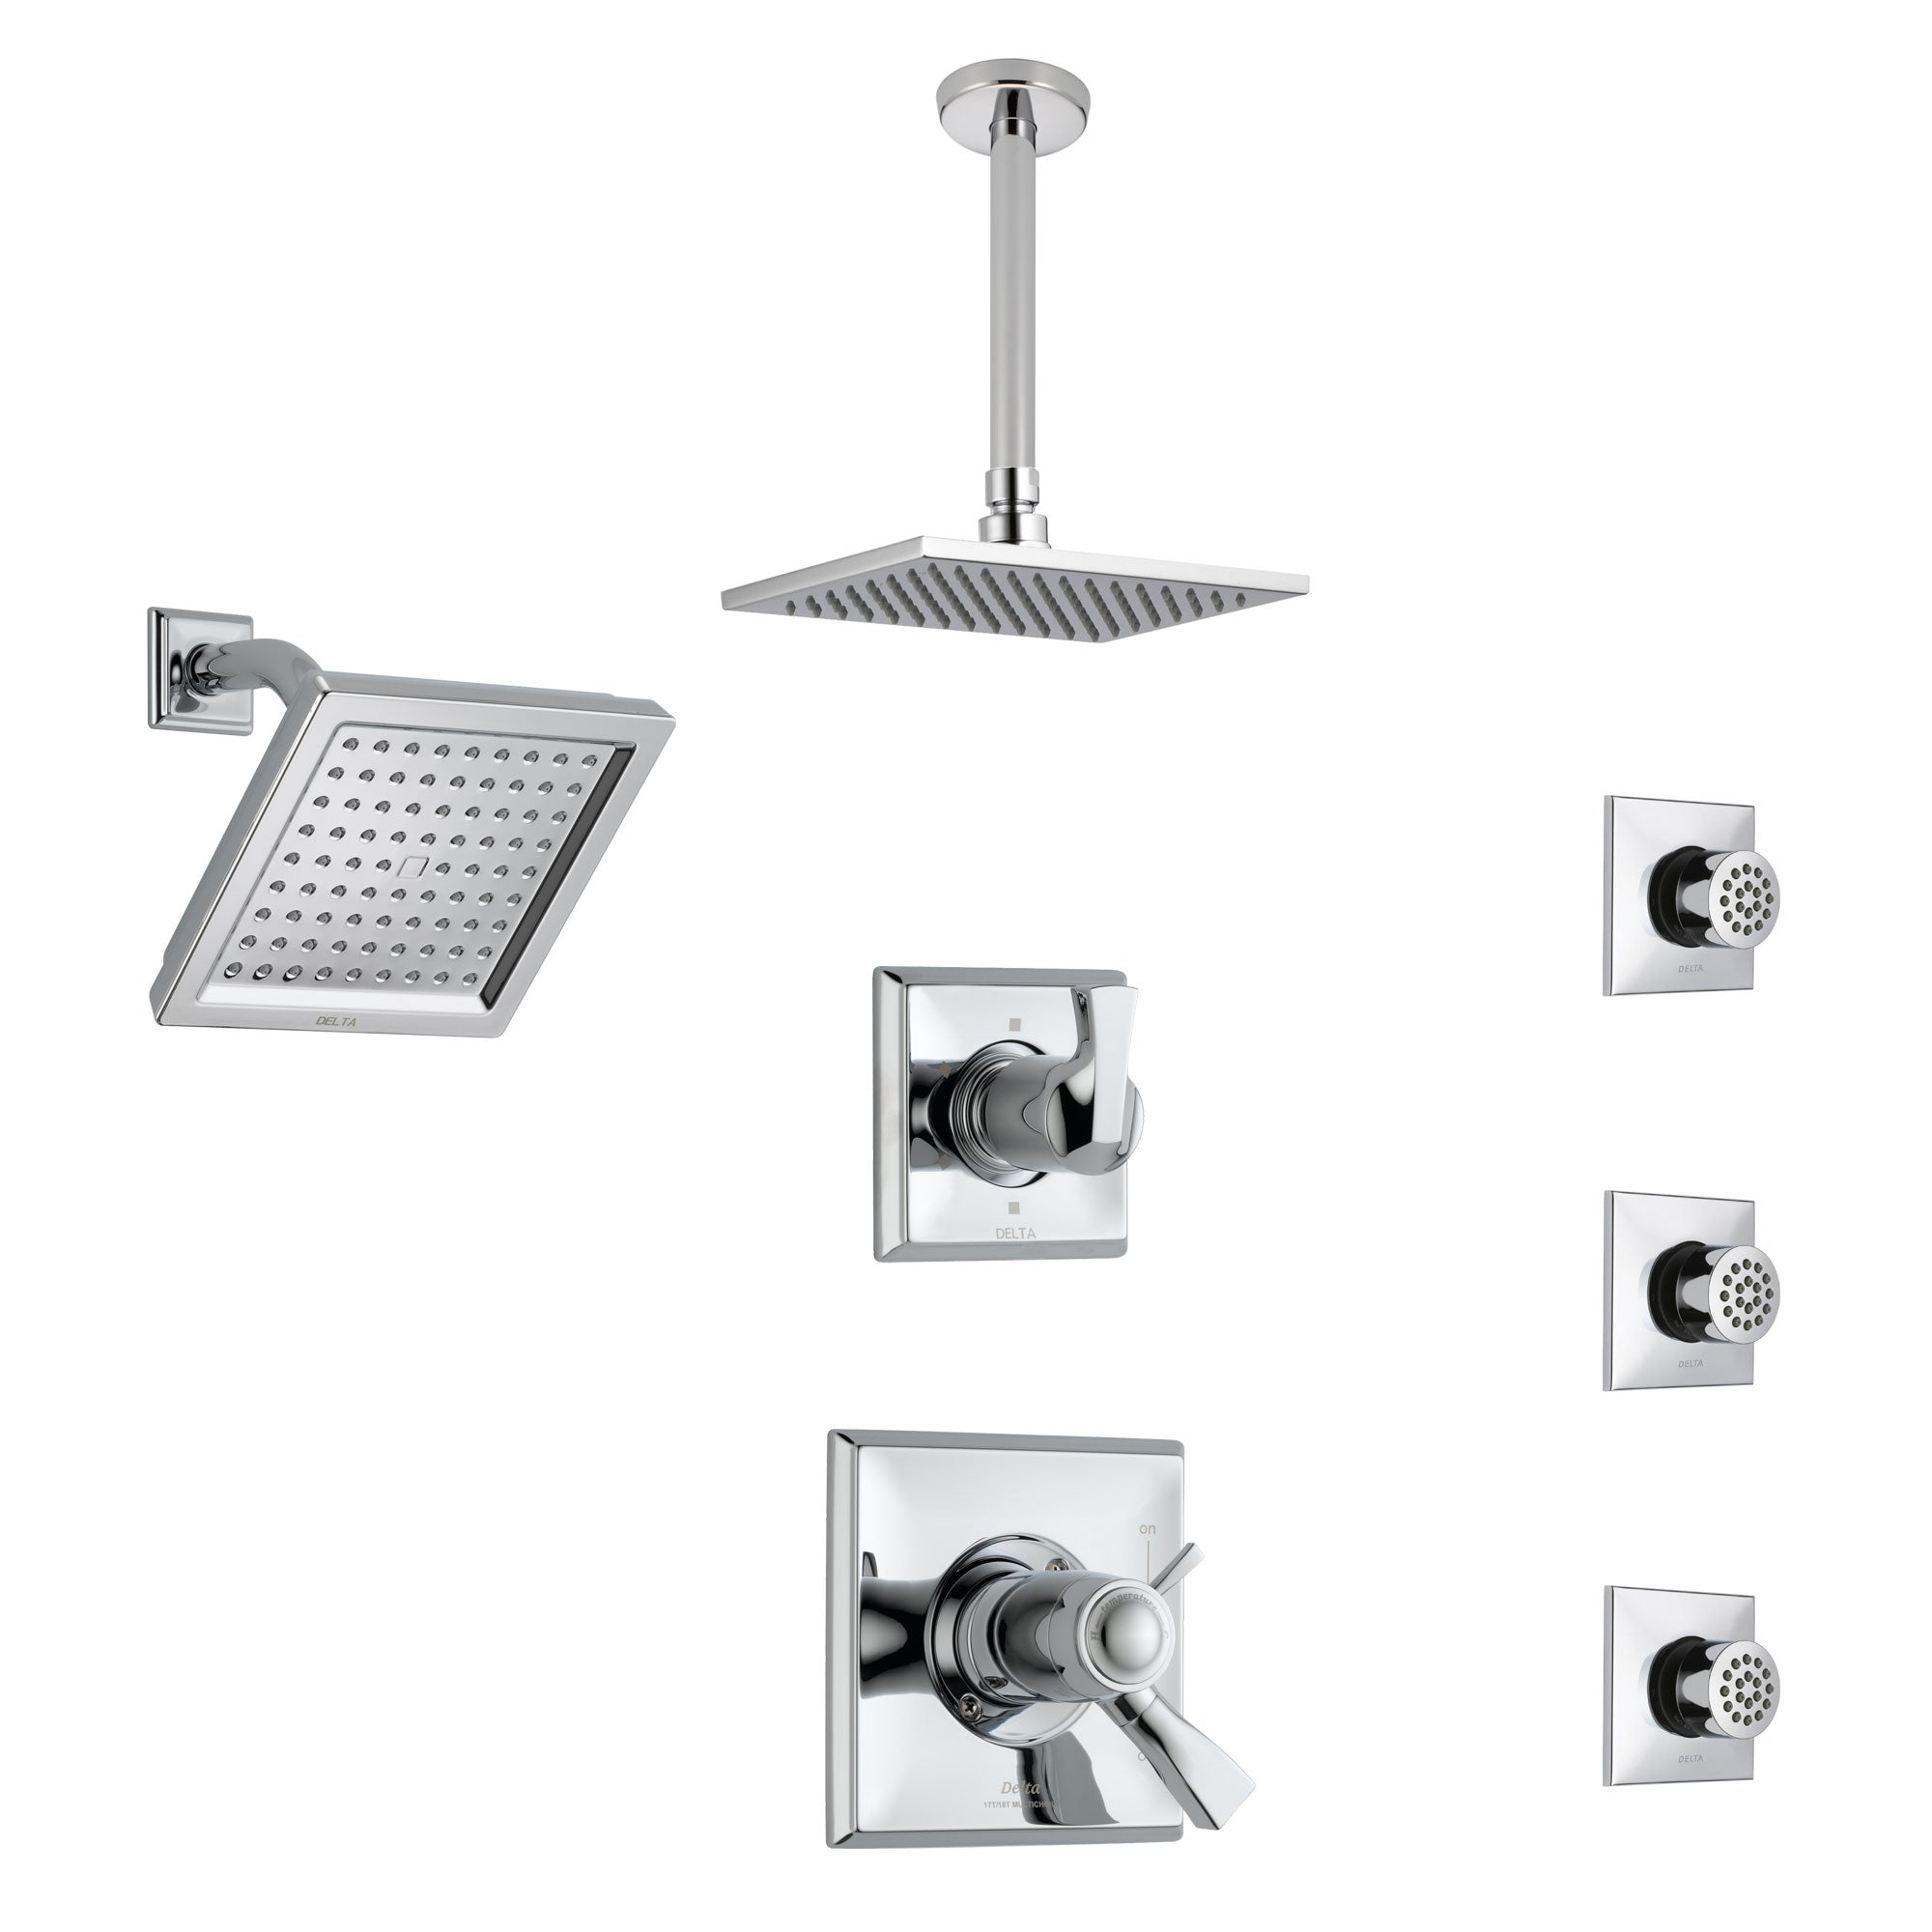 Delta Dryden Chrome Shower System with Dual Thermostatic Control, Diverter, Showerhead, Ceiling Mount Showerhead, and 3 Body Sprays SS17T25135